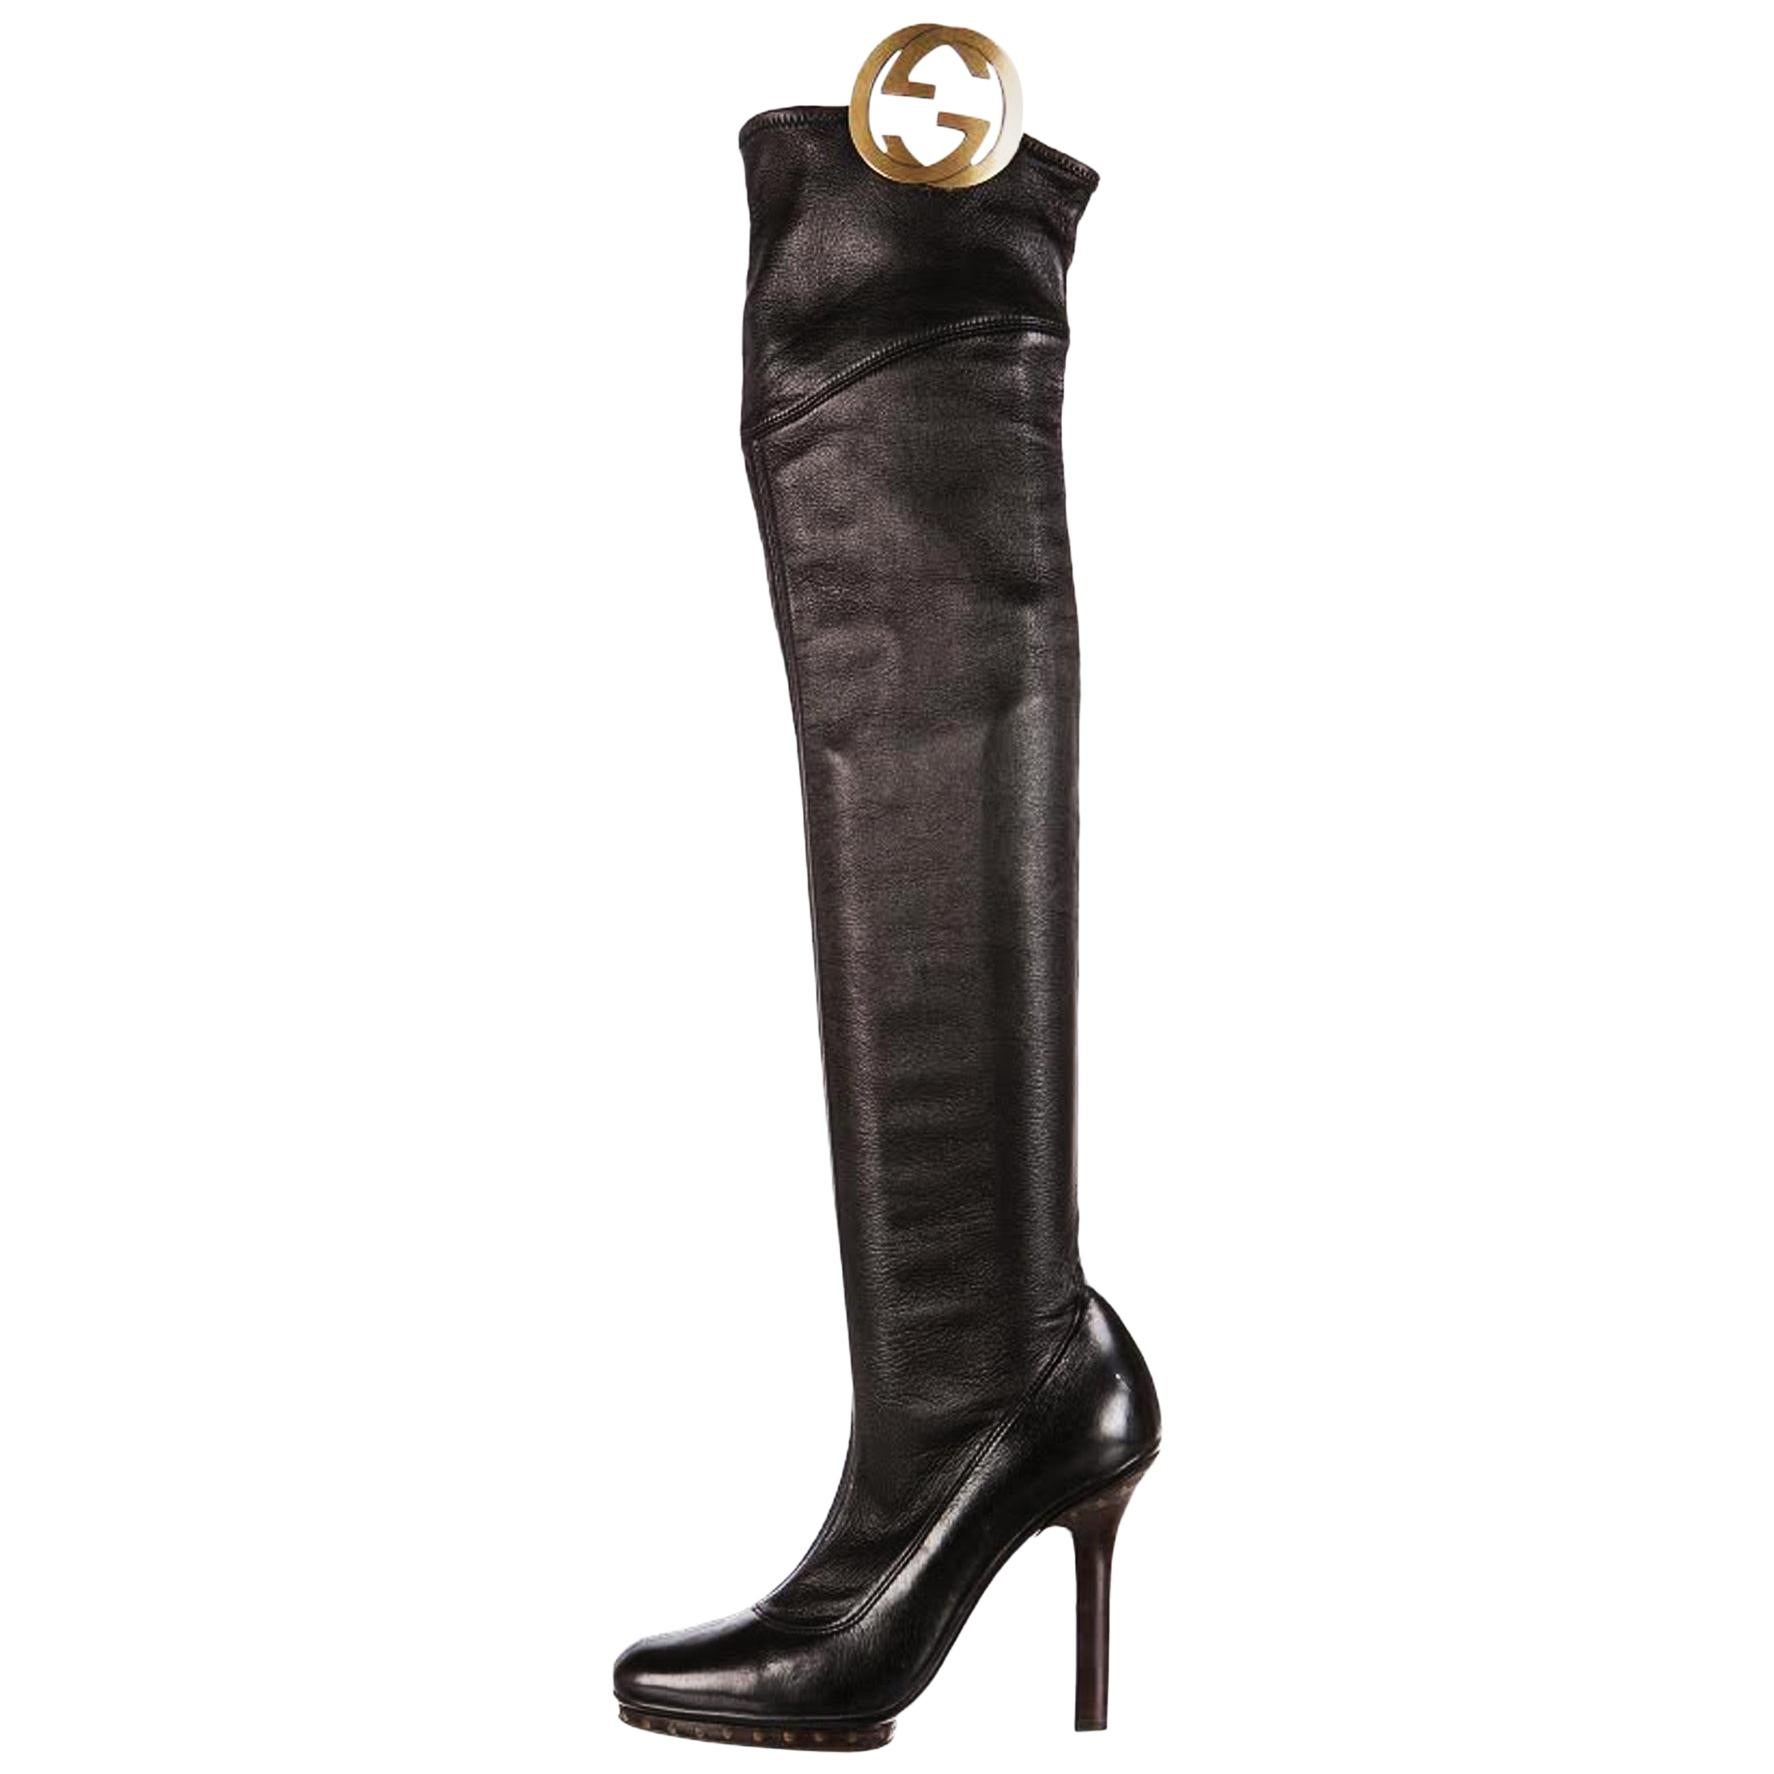 New Tom Ford for GUCCI Collectible Over the Knee GG Medallion Leather Boots 36.5